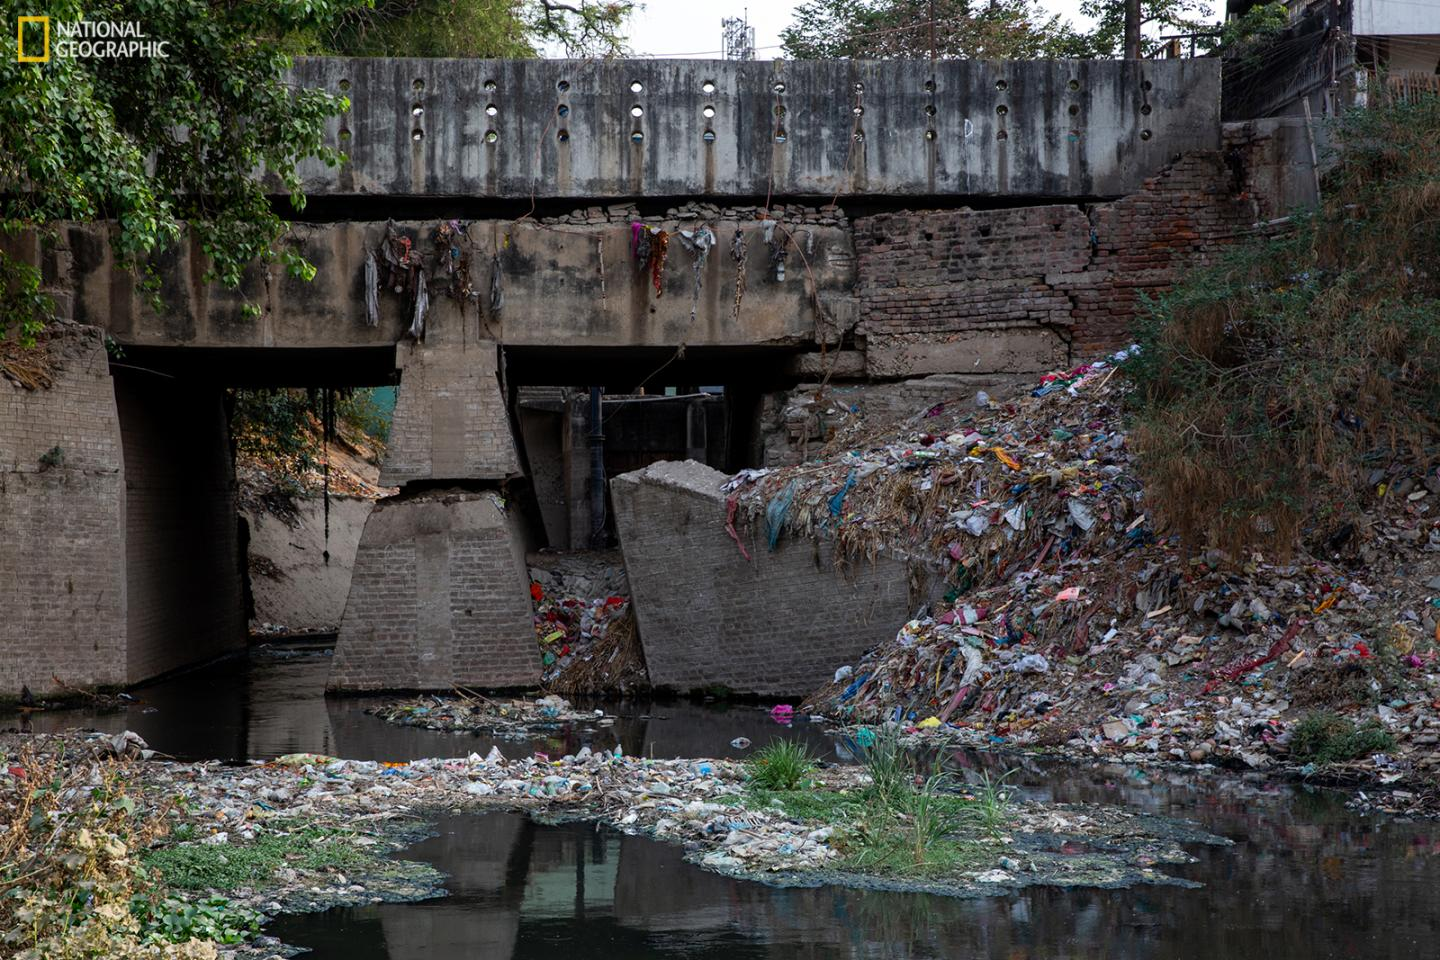 Combined river flows could send up to 3 billion microplastics a day into the Bay of Bengal